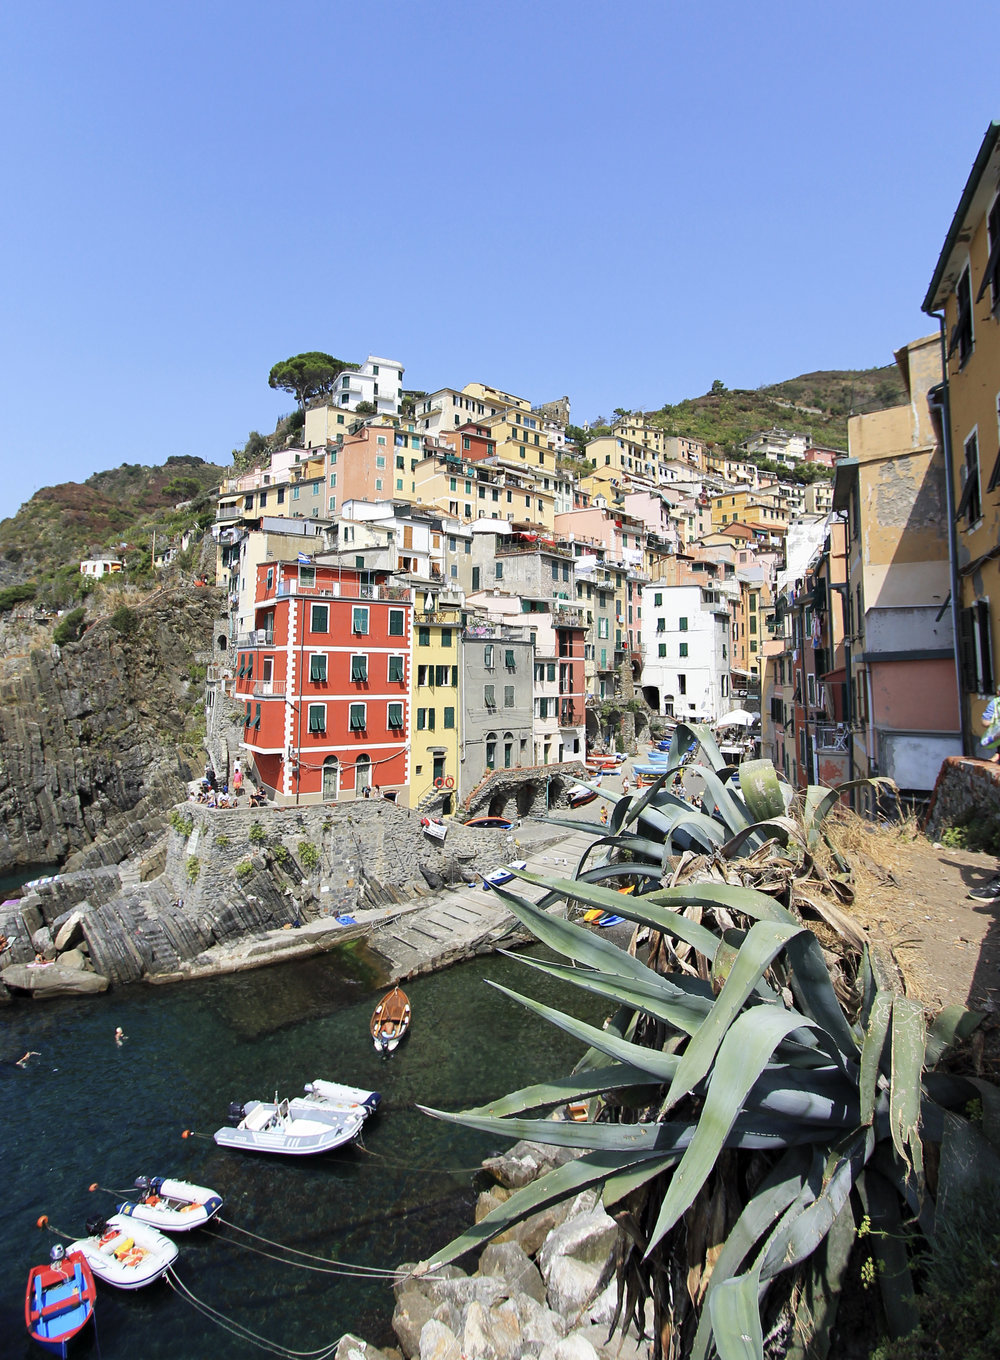 riomaggiore italy cinque terre buildings view harbor boats.jpg